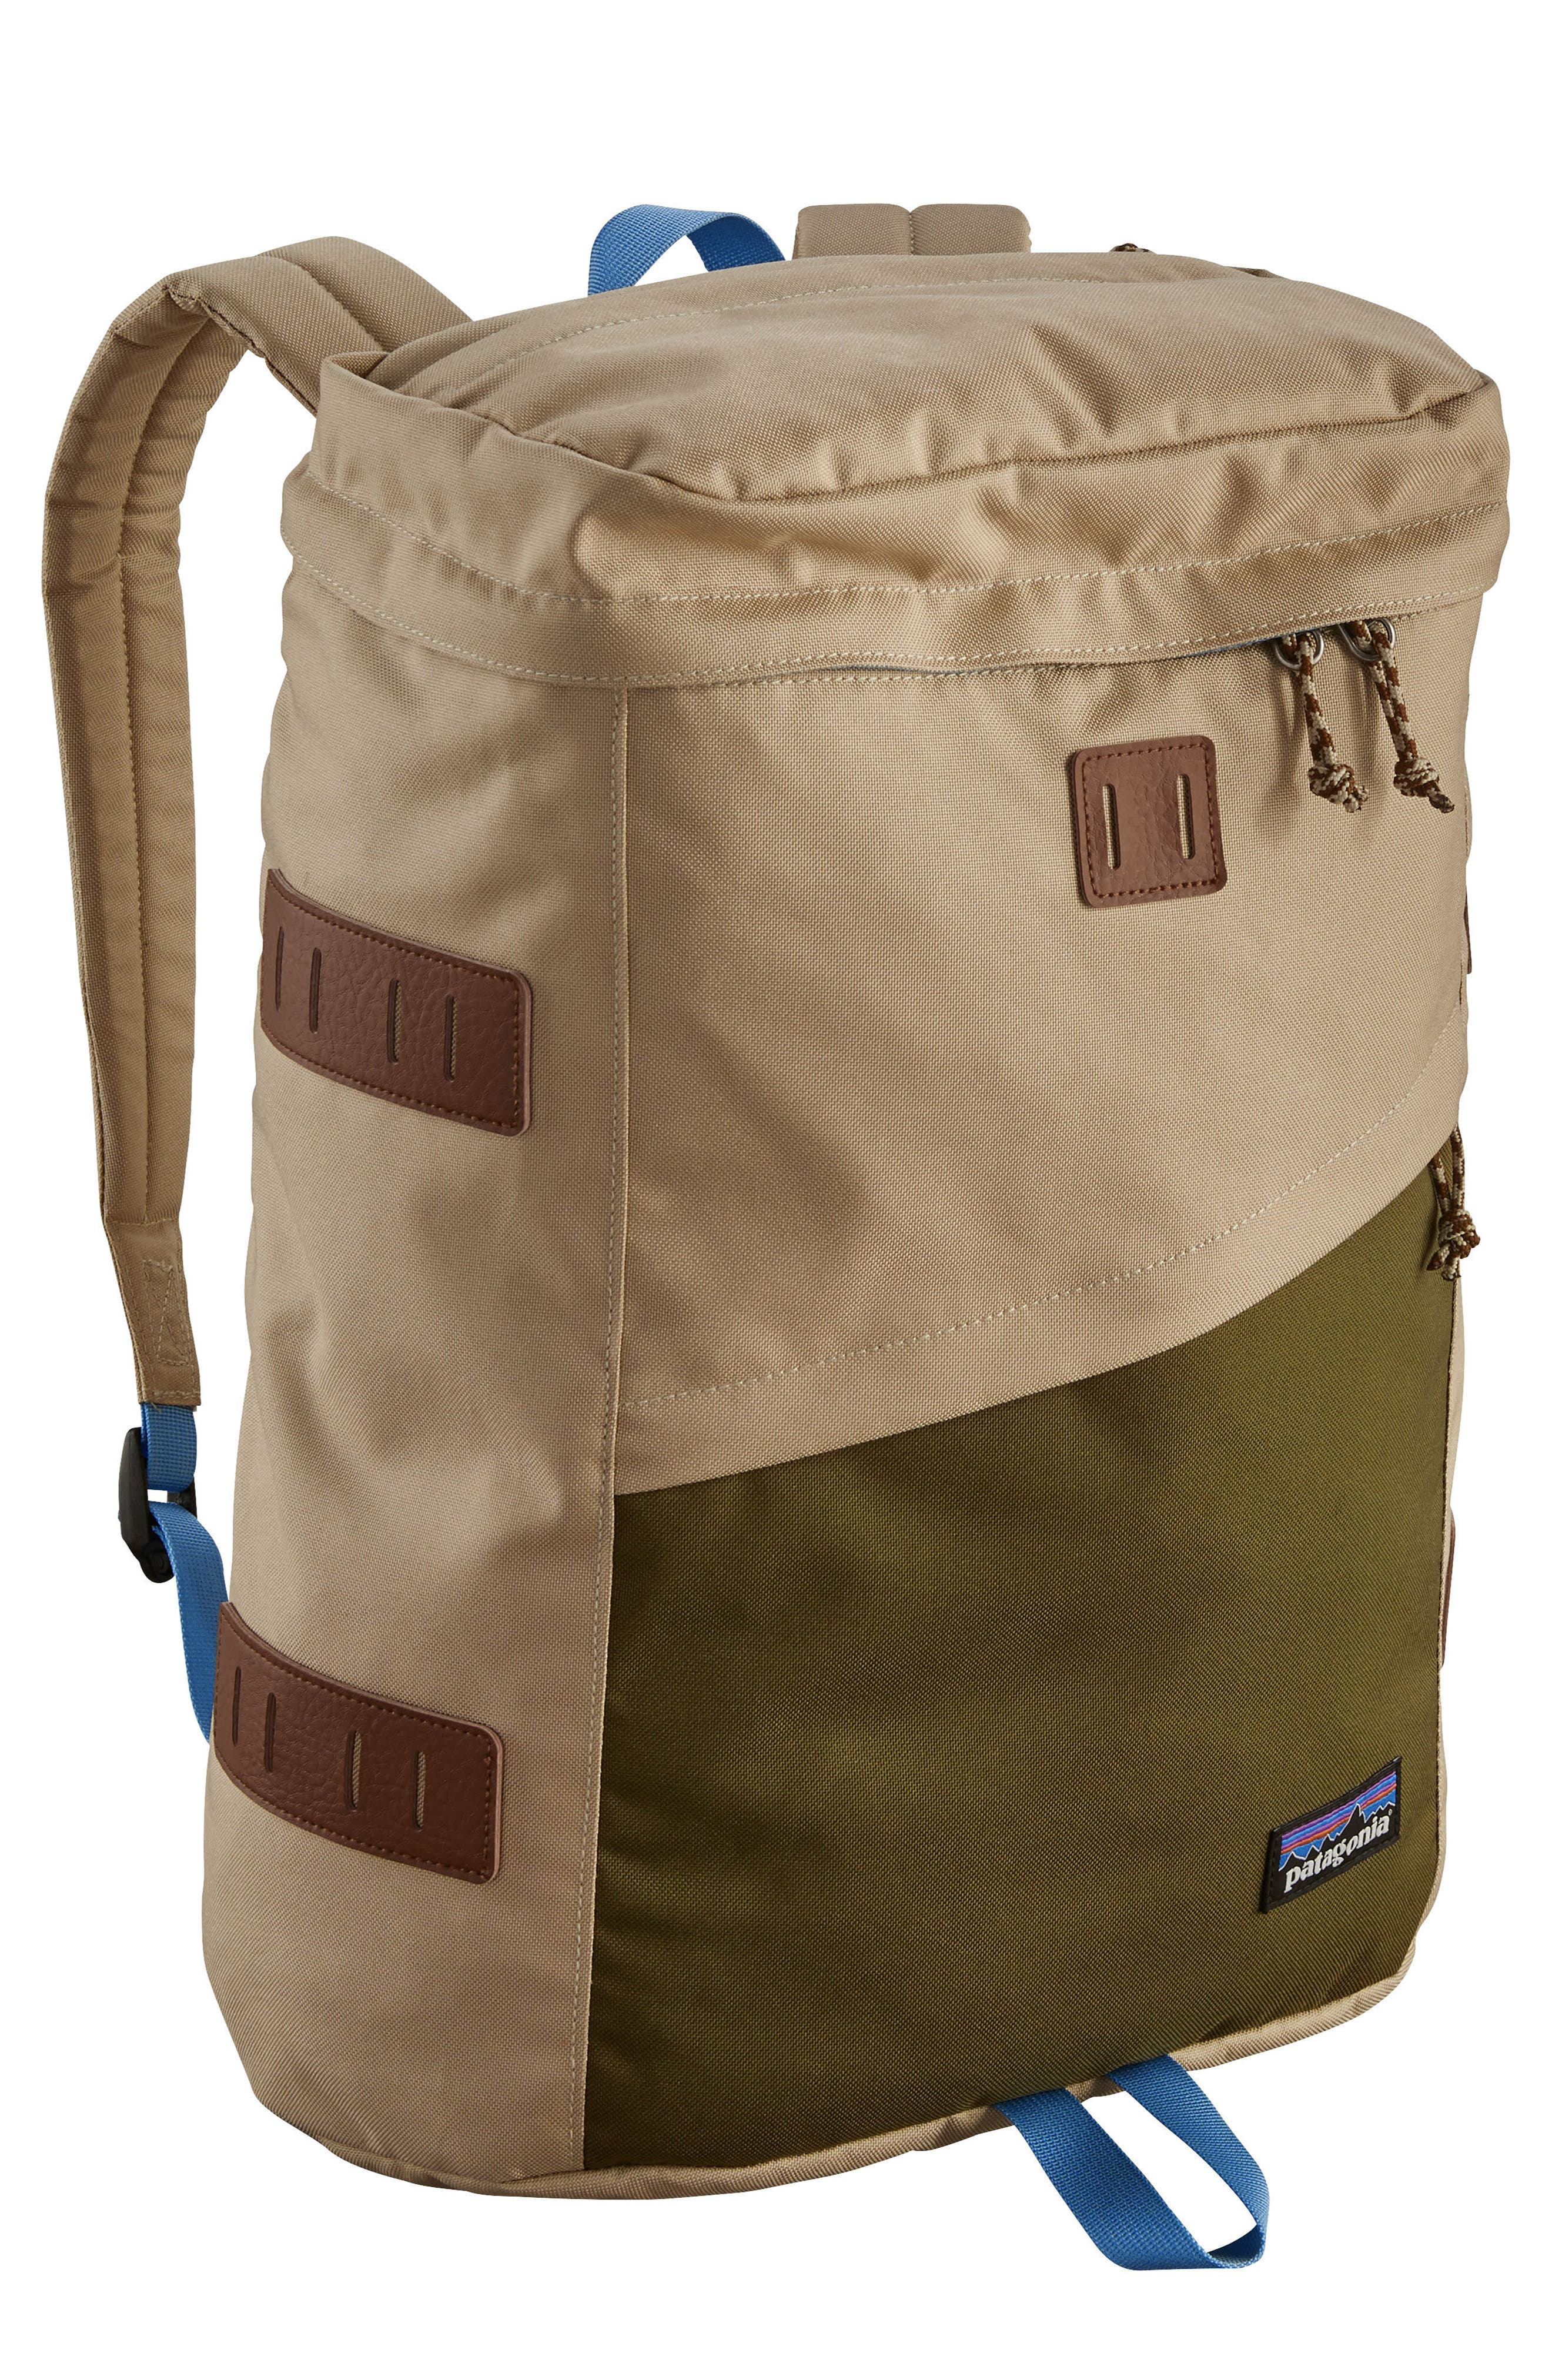 Patagonia 'Toromiro' Backpack (22 Liter)